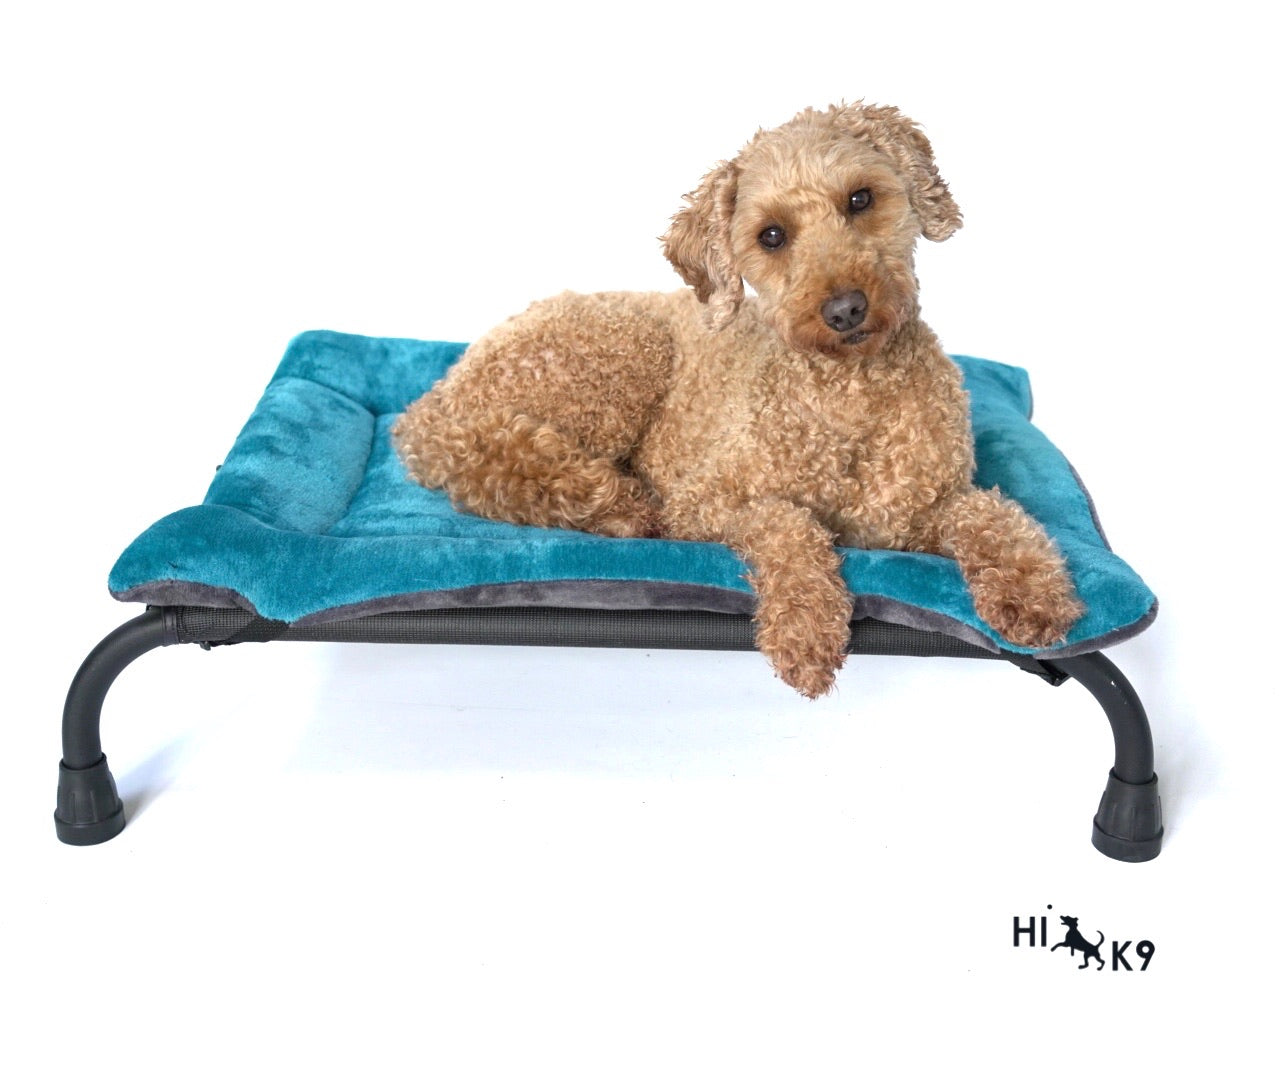 Teal Cuddle Soft & Grey Cuddle Soft Luxury Reversible Pad - HiK9